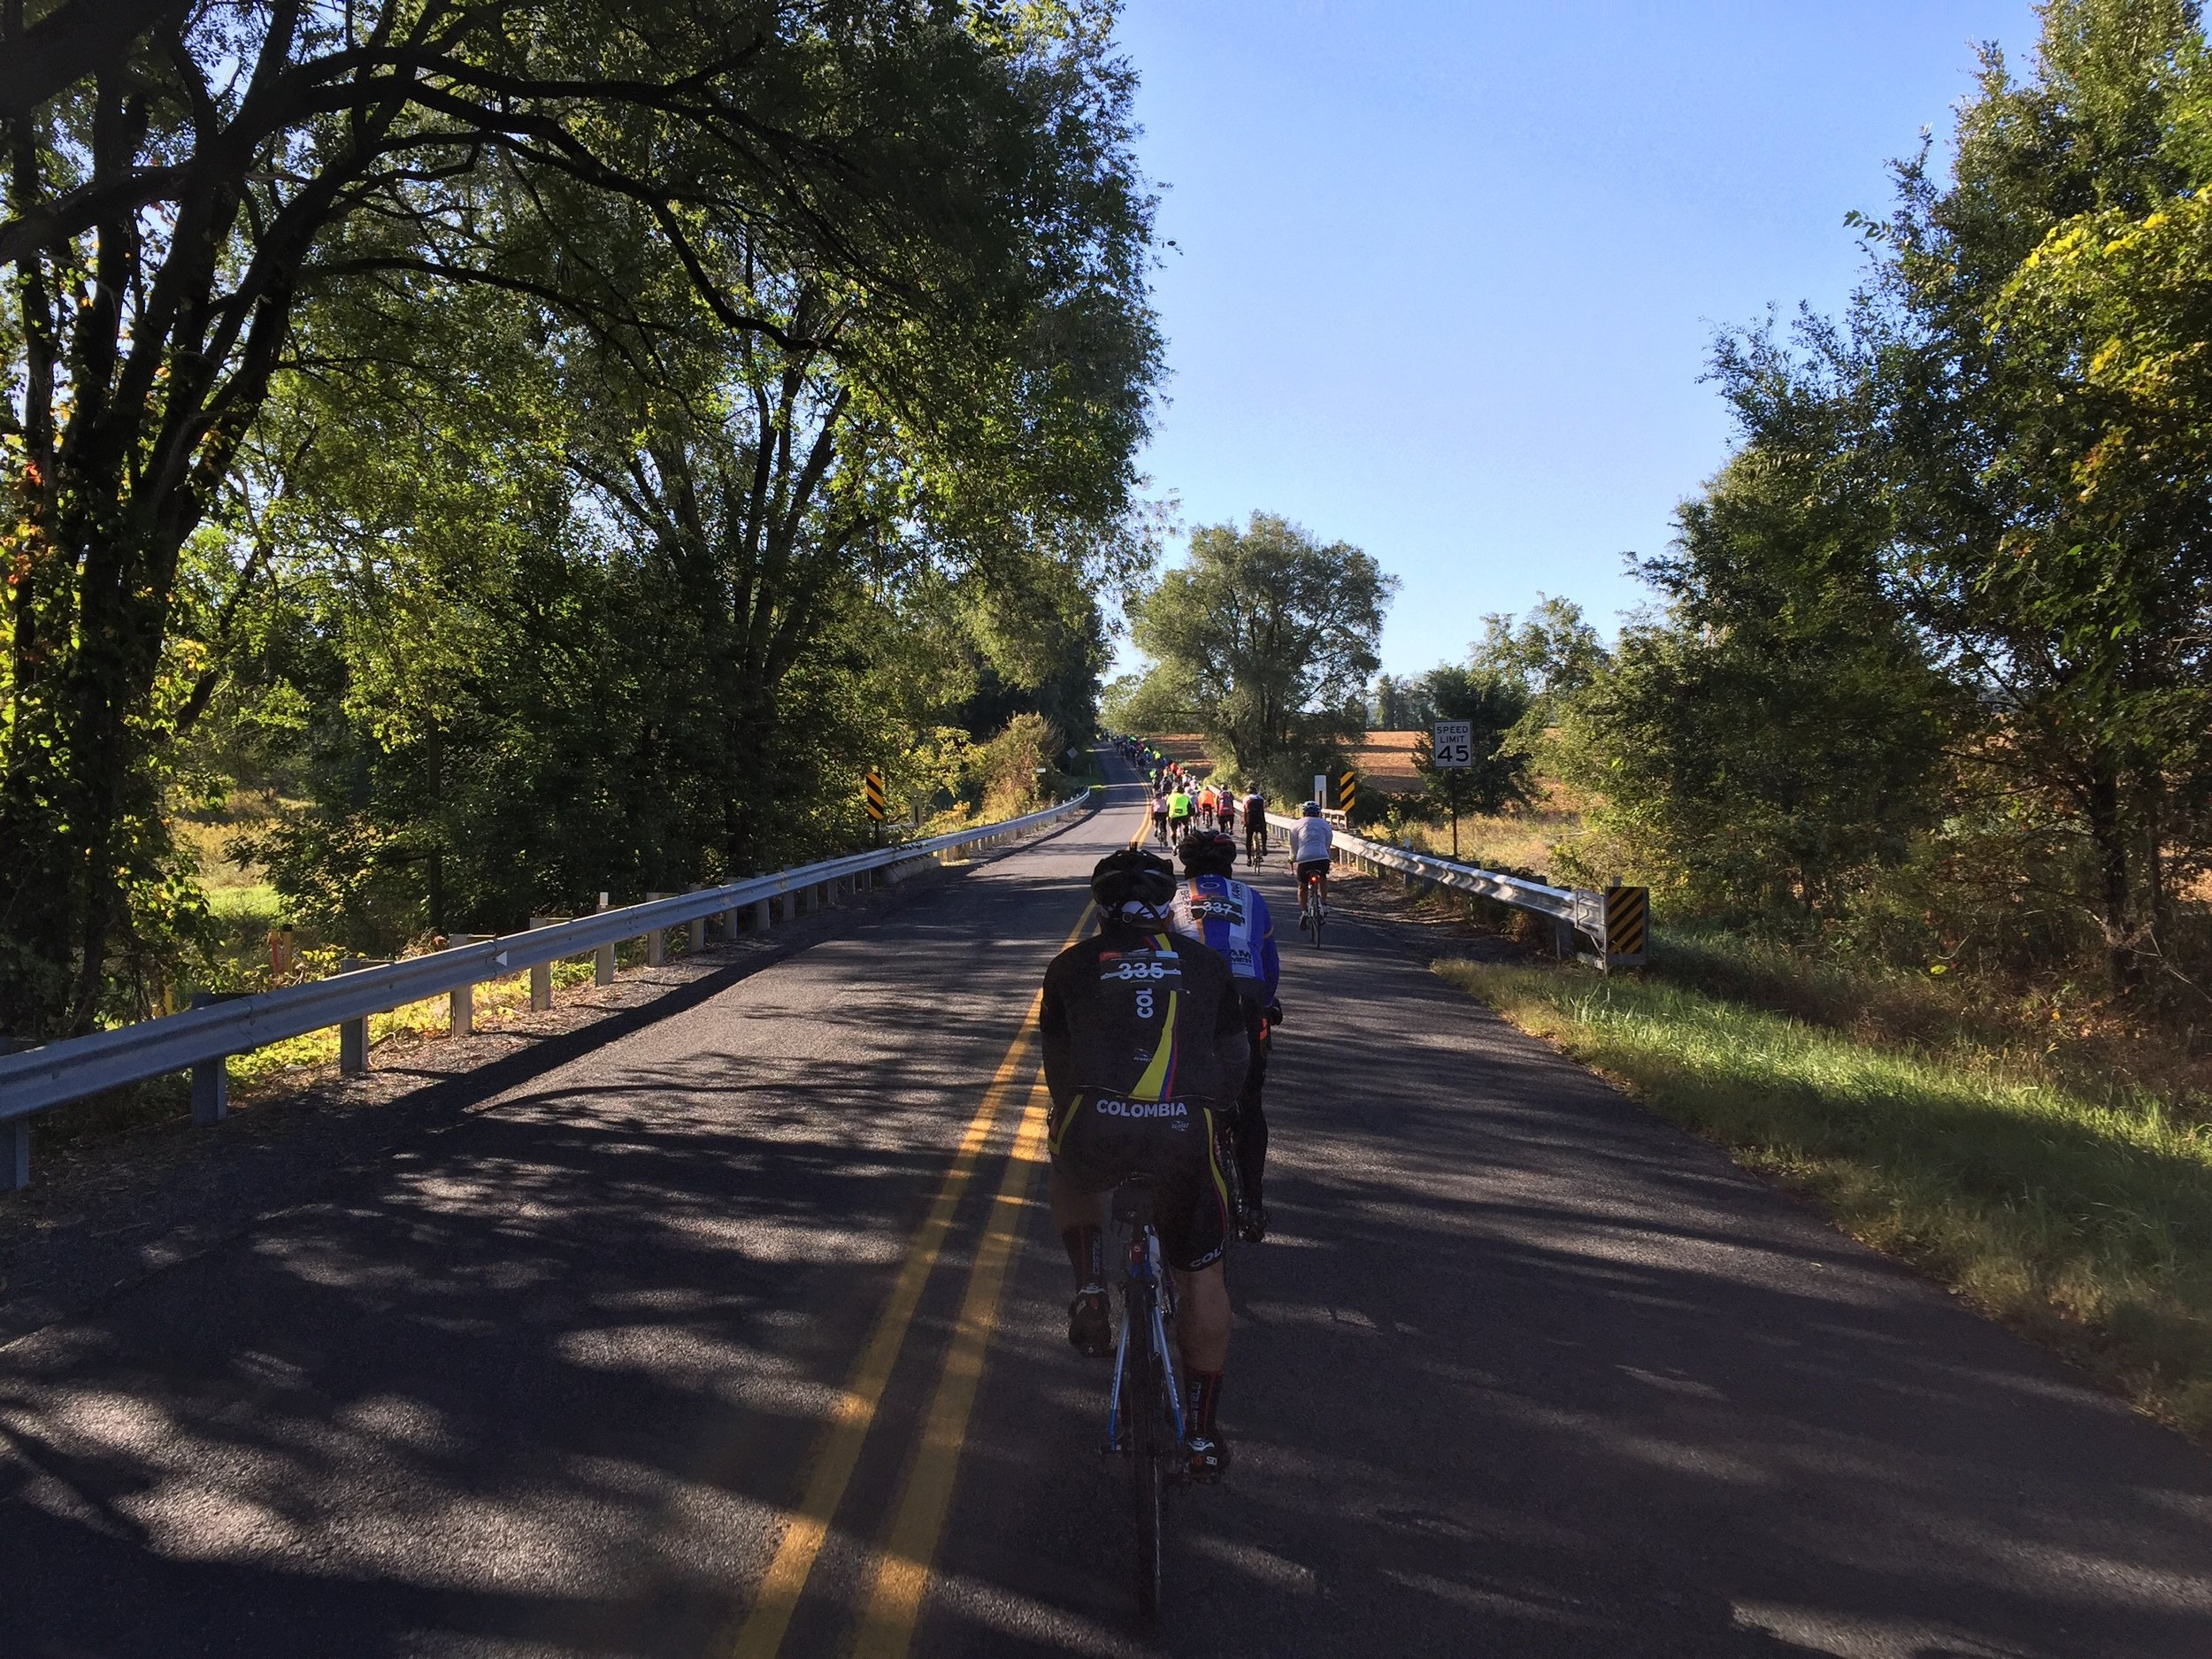 The first few miles of the fity-mile route was heavily populated with hopeful cyclists.